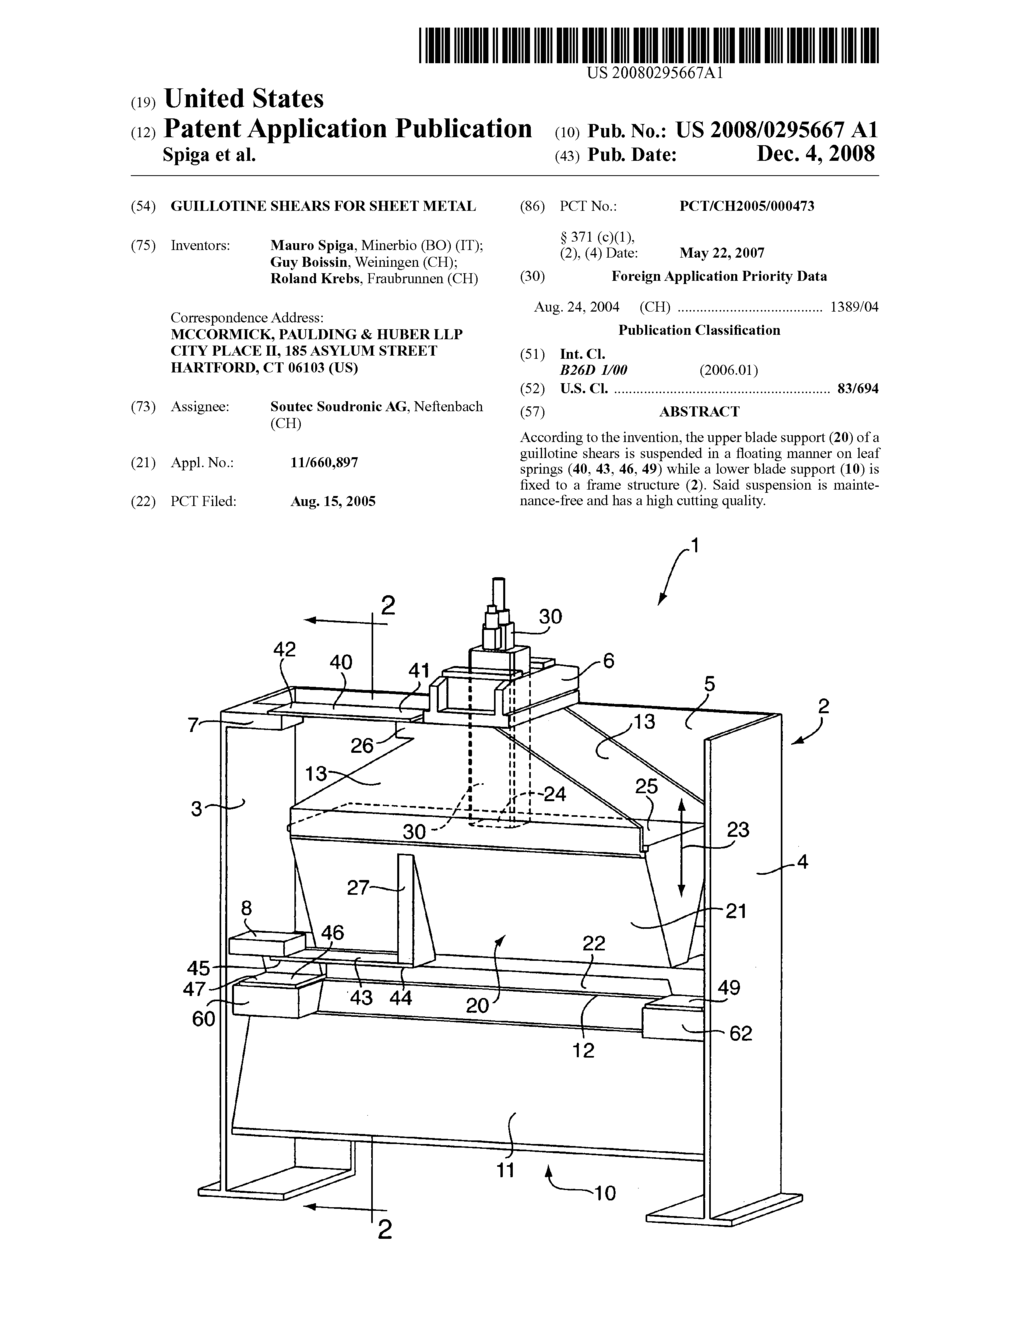 Guillotine Shears For Sheet Metal - diagram, schematic, and image 01